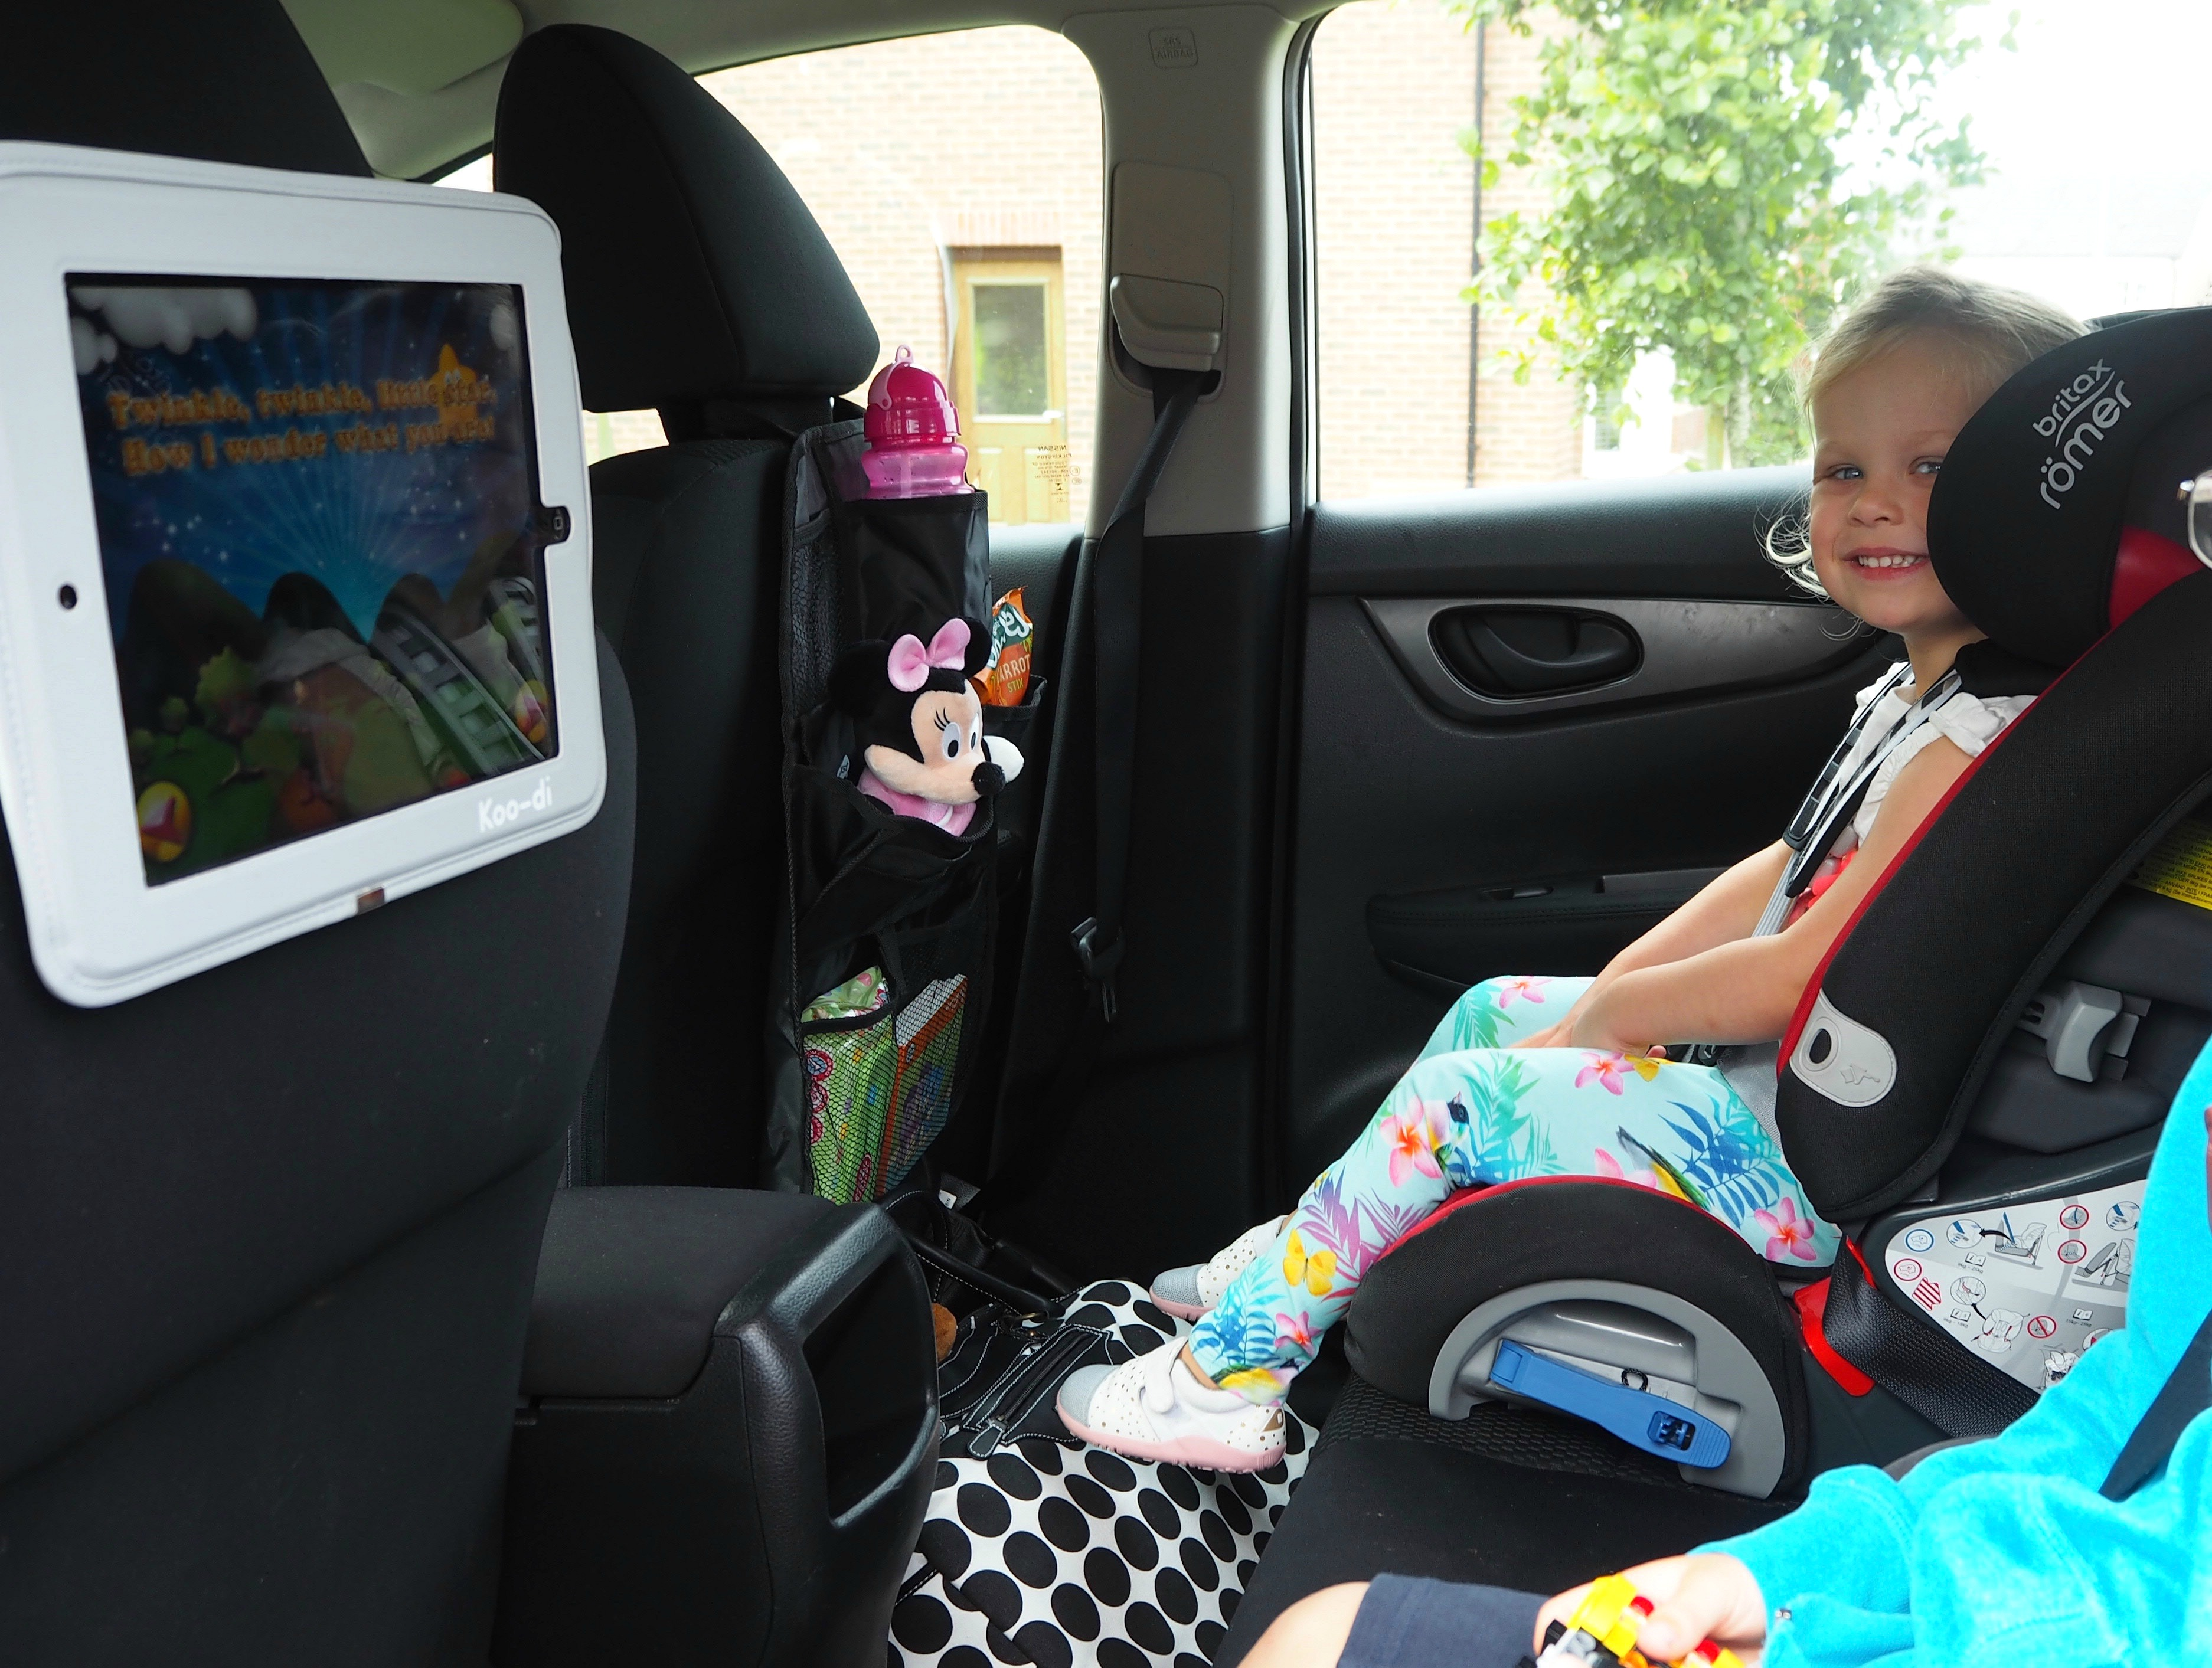 Travelling children with ipad